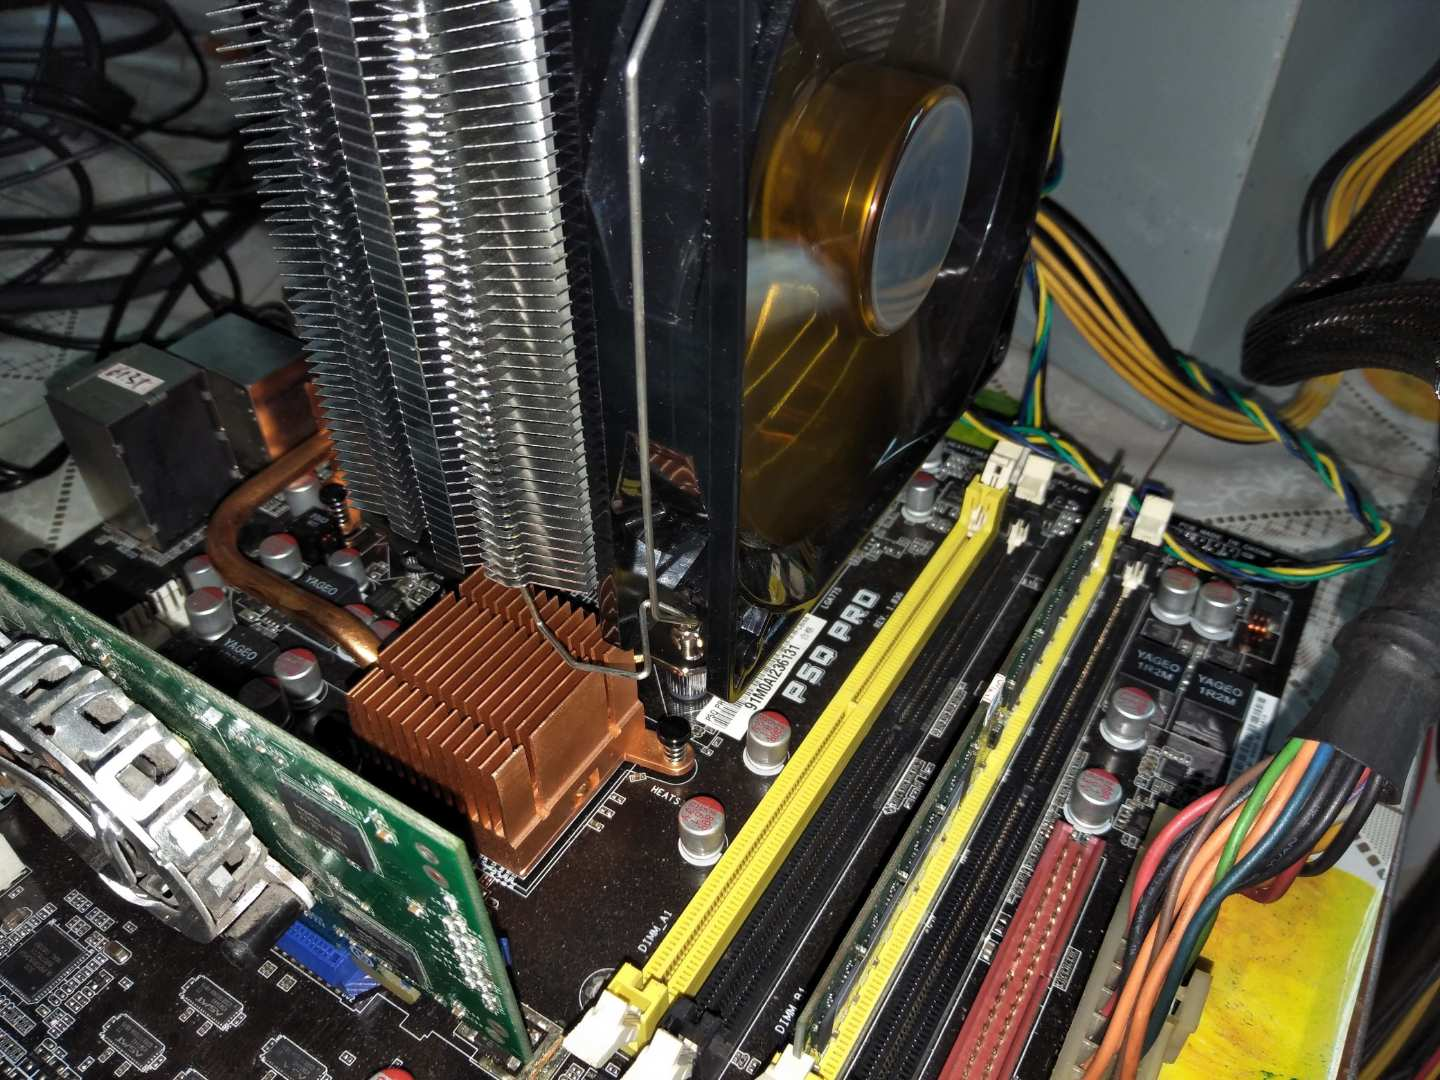 Overclocking Northwood On Lga775 Motherboard By 478 To 775 Cpu Mainboard Lga I945 Off Board P4 24c 200fsb M0 Asus P5q Pro Air Cooling